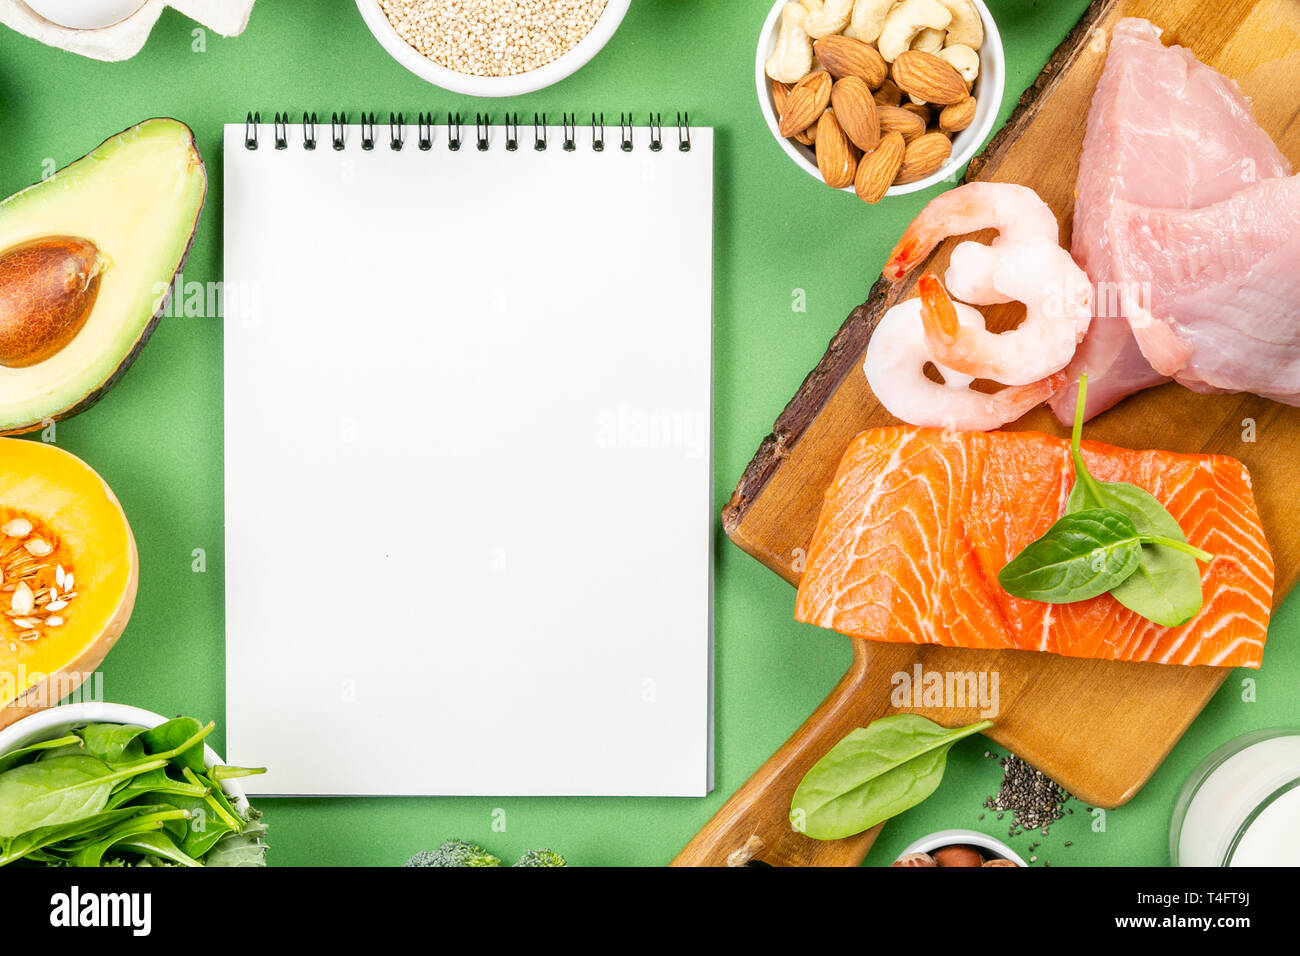 Mediterranean diet concept - meat, fish, fruits and